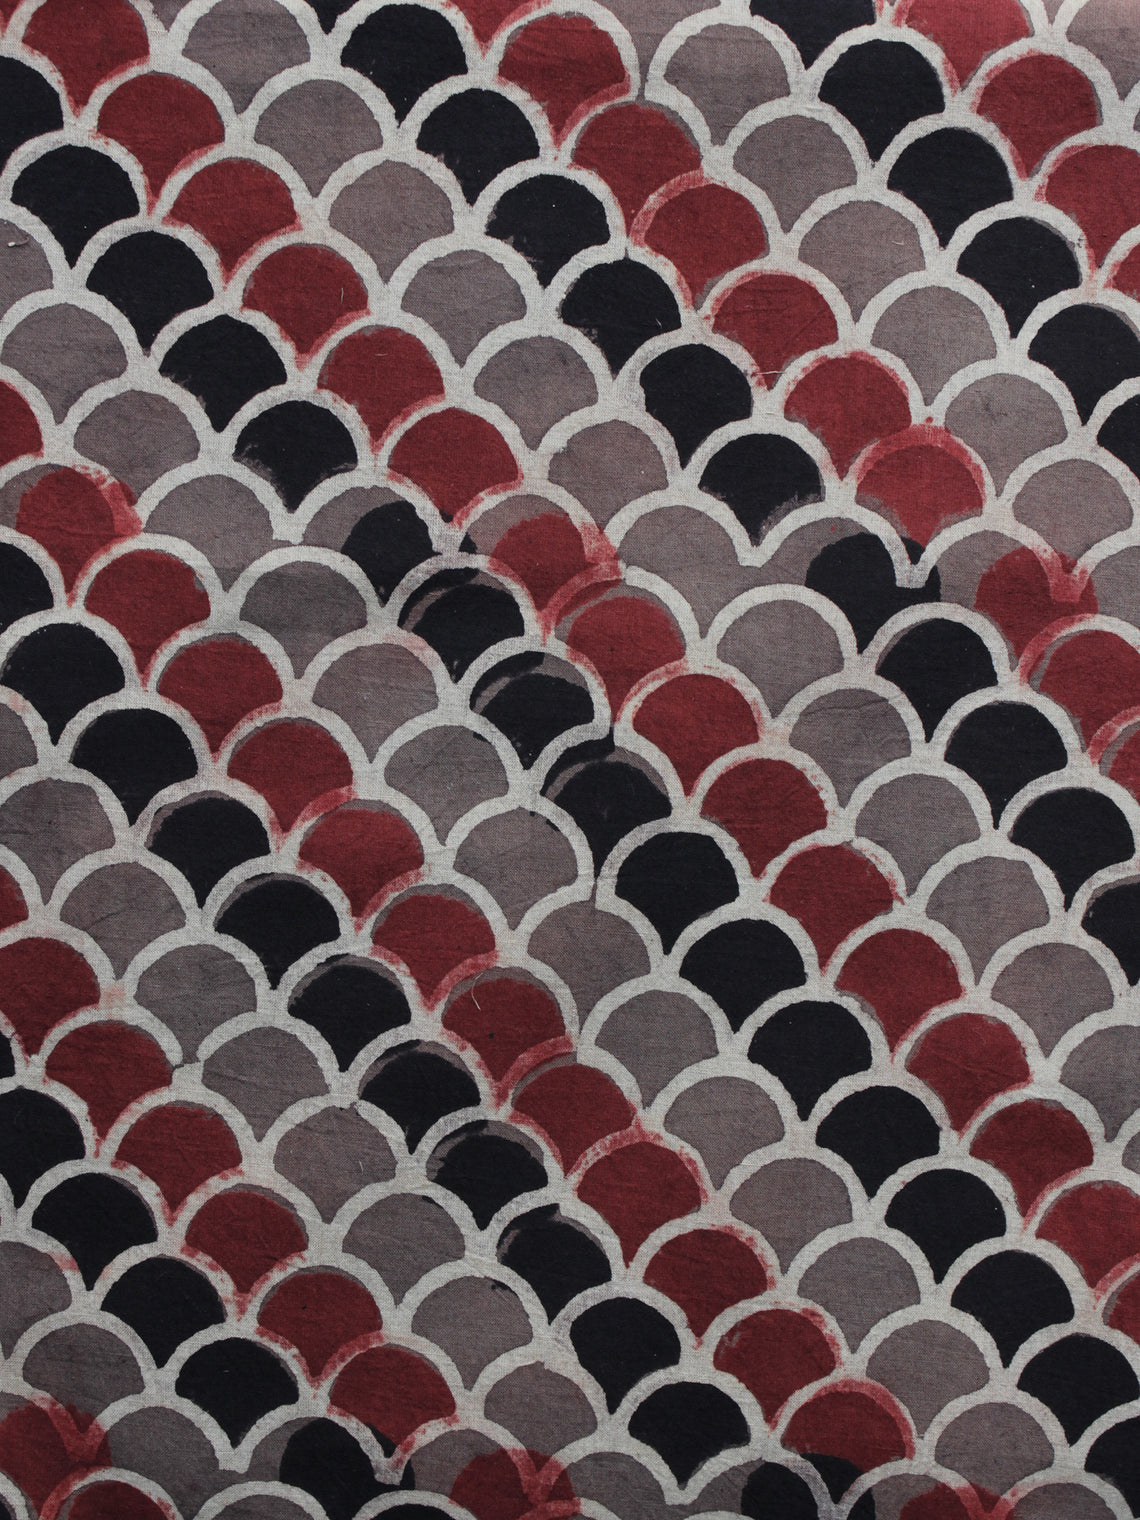 Brown Red Black Ajrakh Printed Cotton Fabric Per Meter - F003F1181